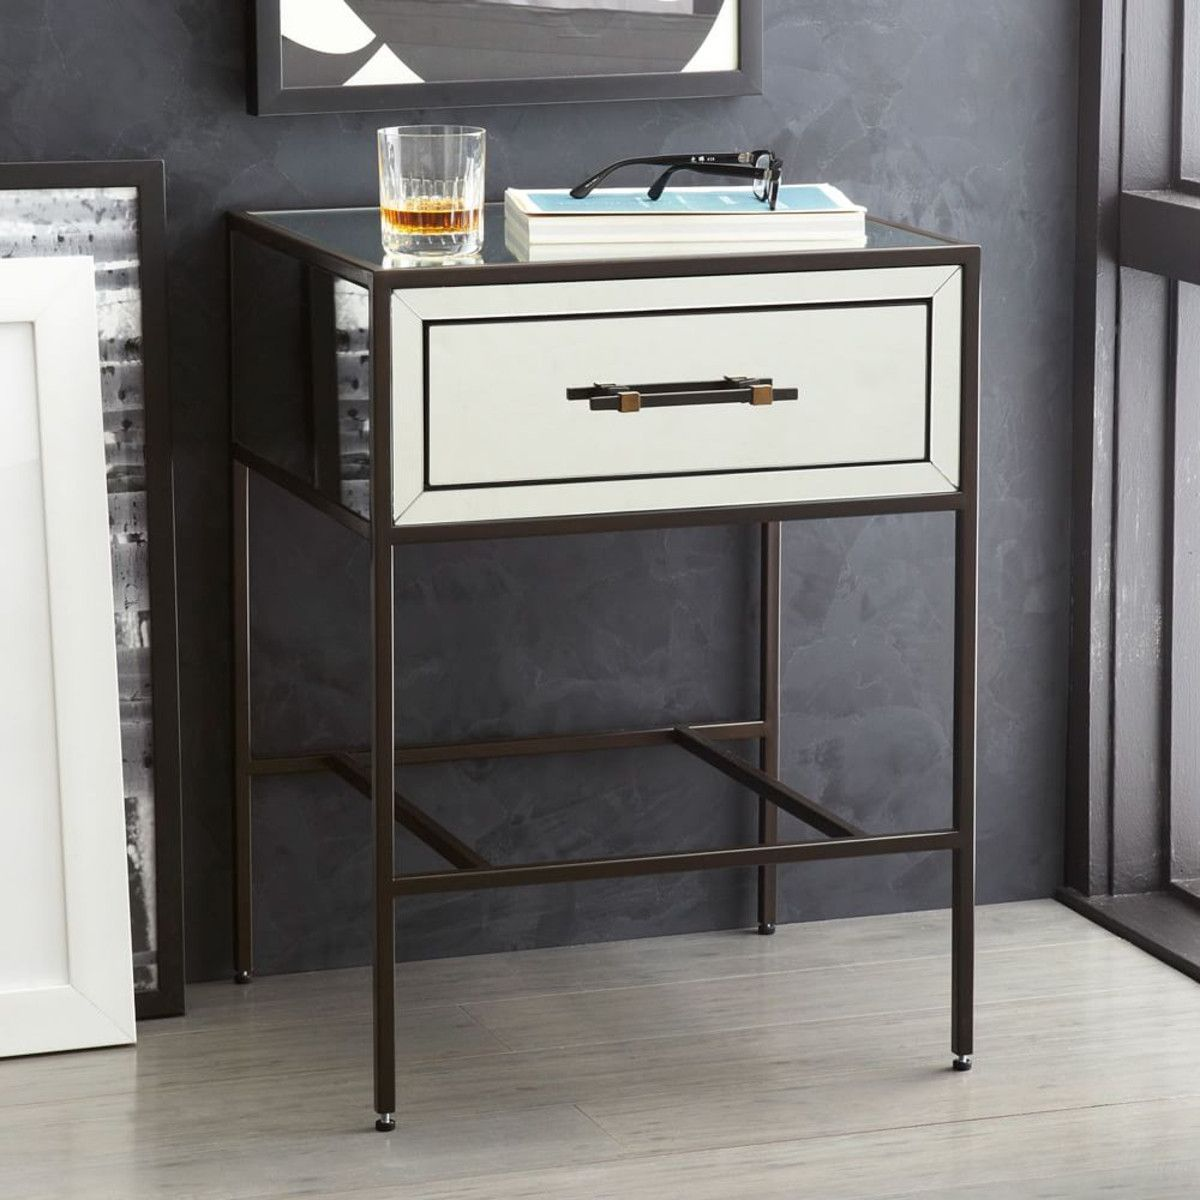 Mirrored Bedside Table | Bedroom | Pinterest | Mirror bedside table ...